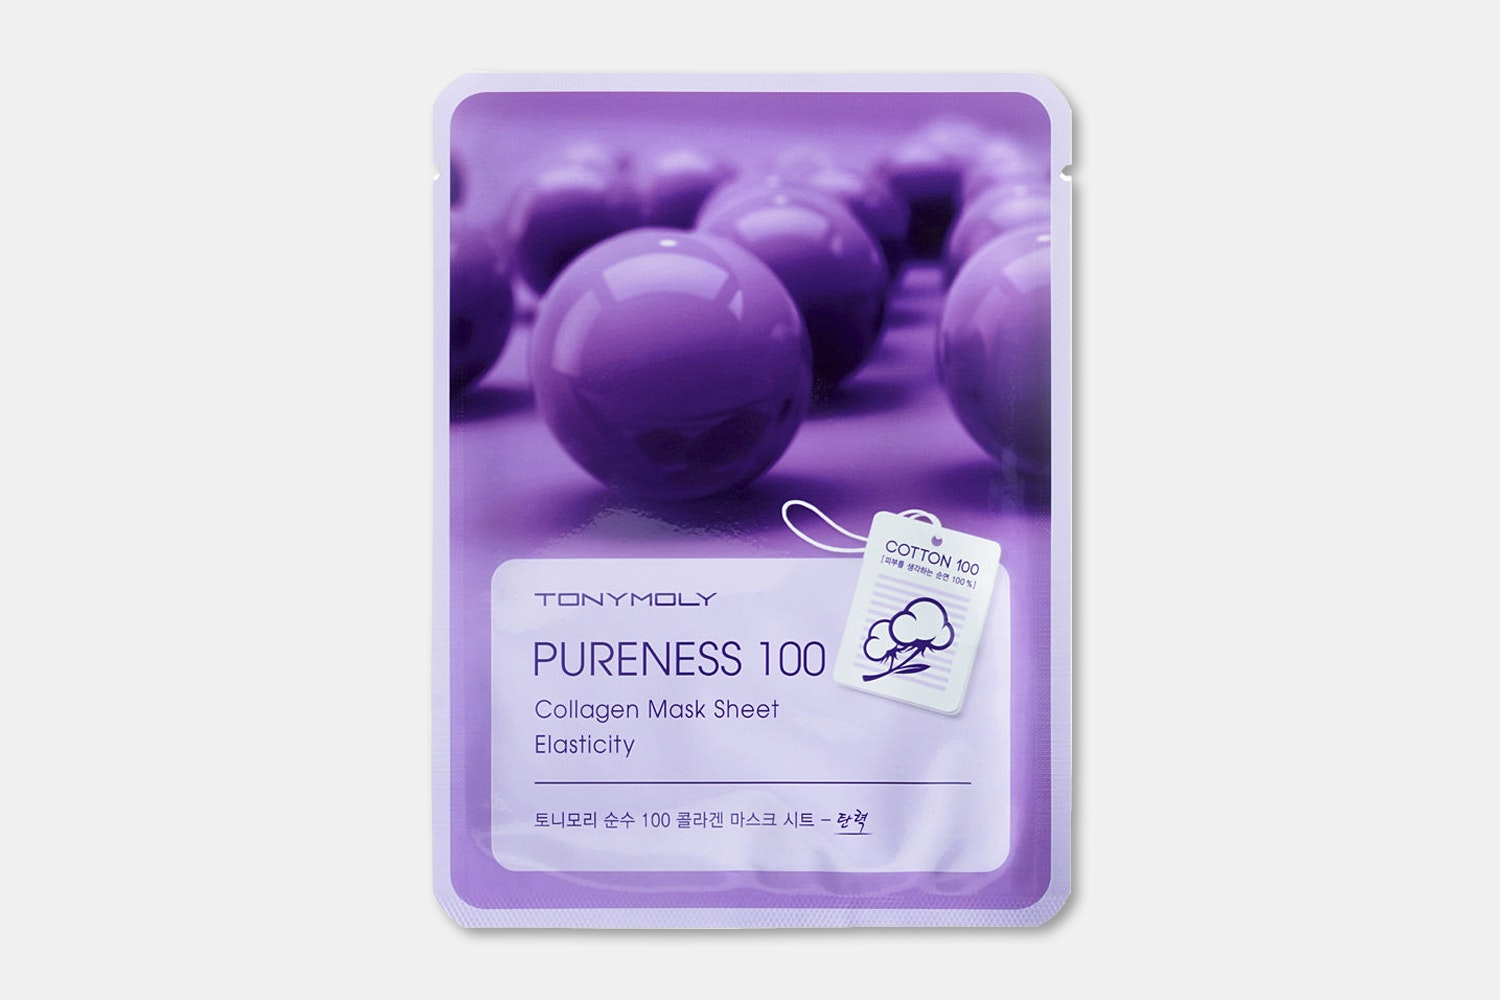 Pureness 100 marine collagen mask